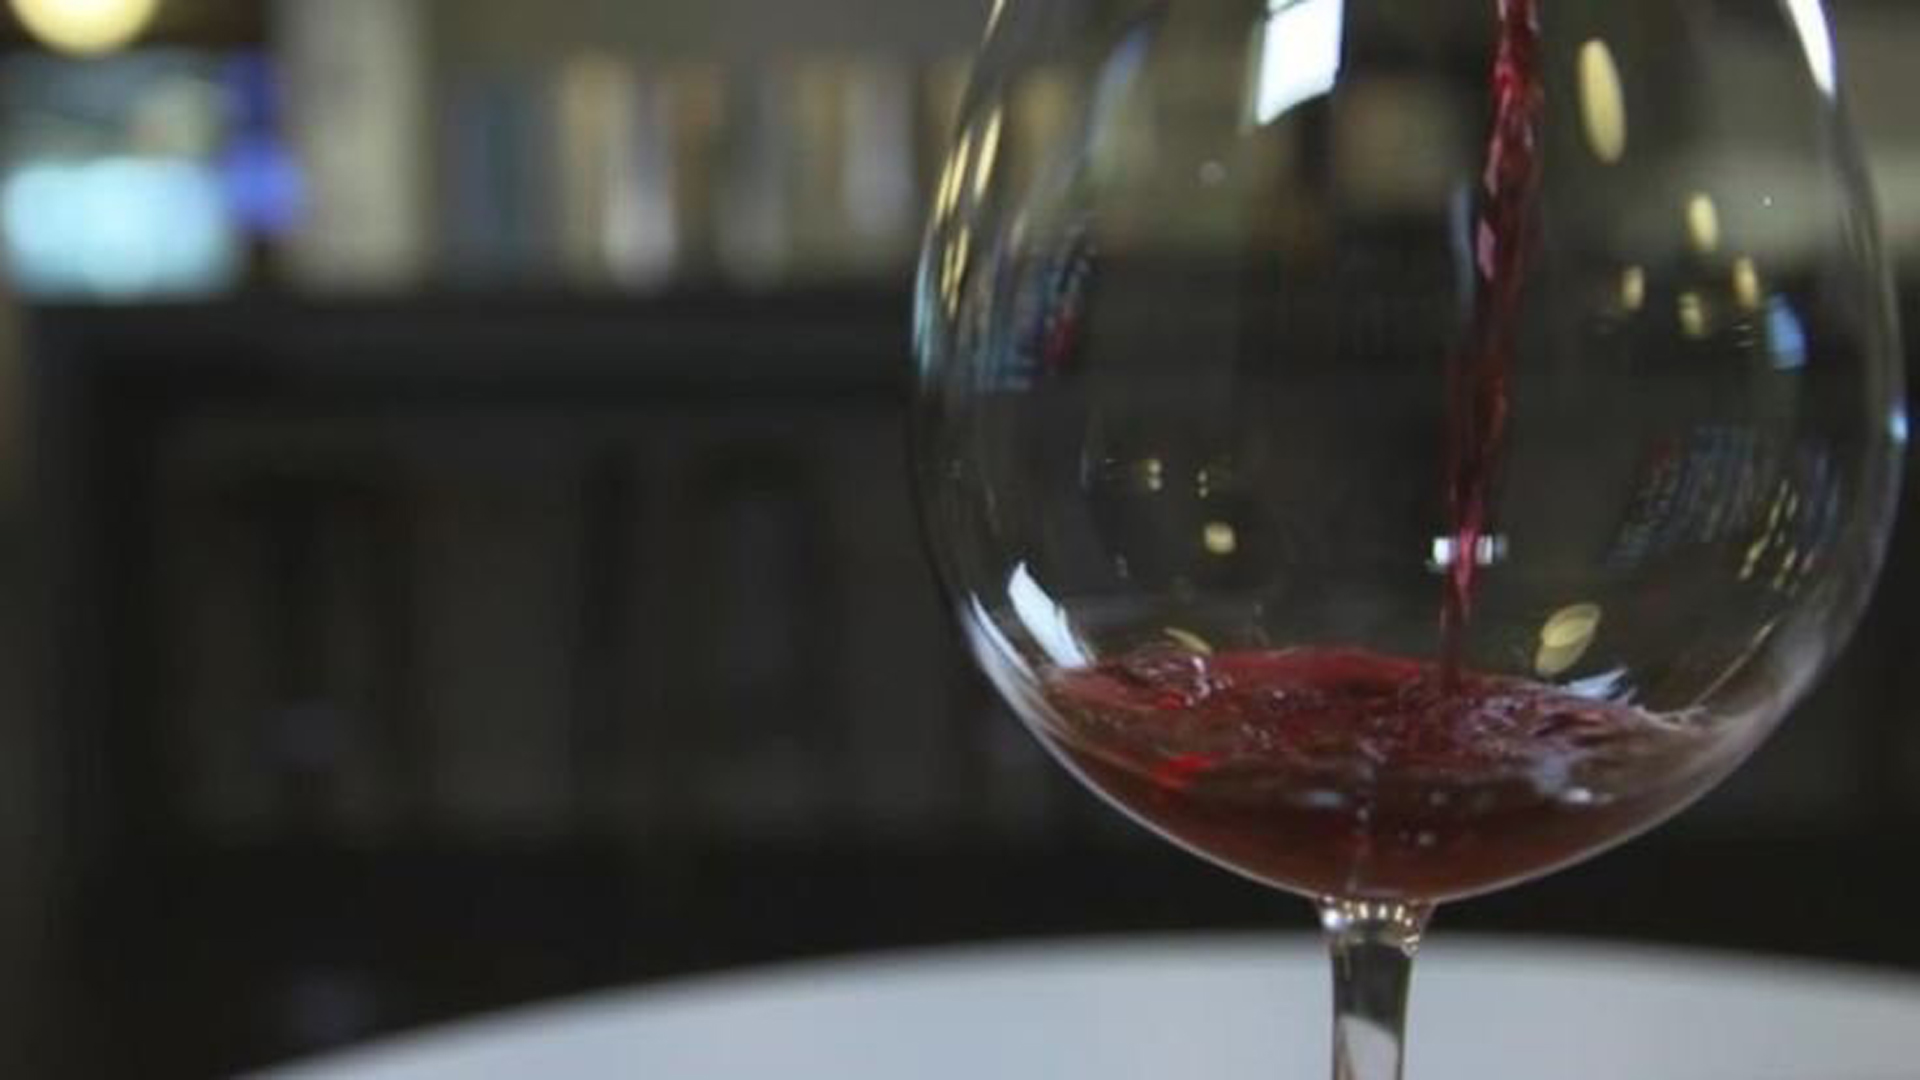 A file photo of a glass of red wine. (Credit: CNN)